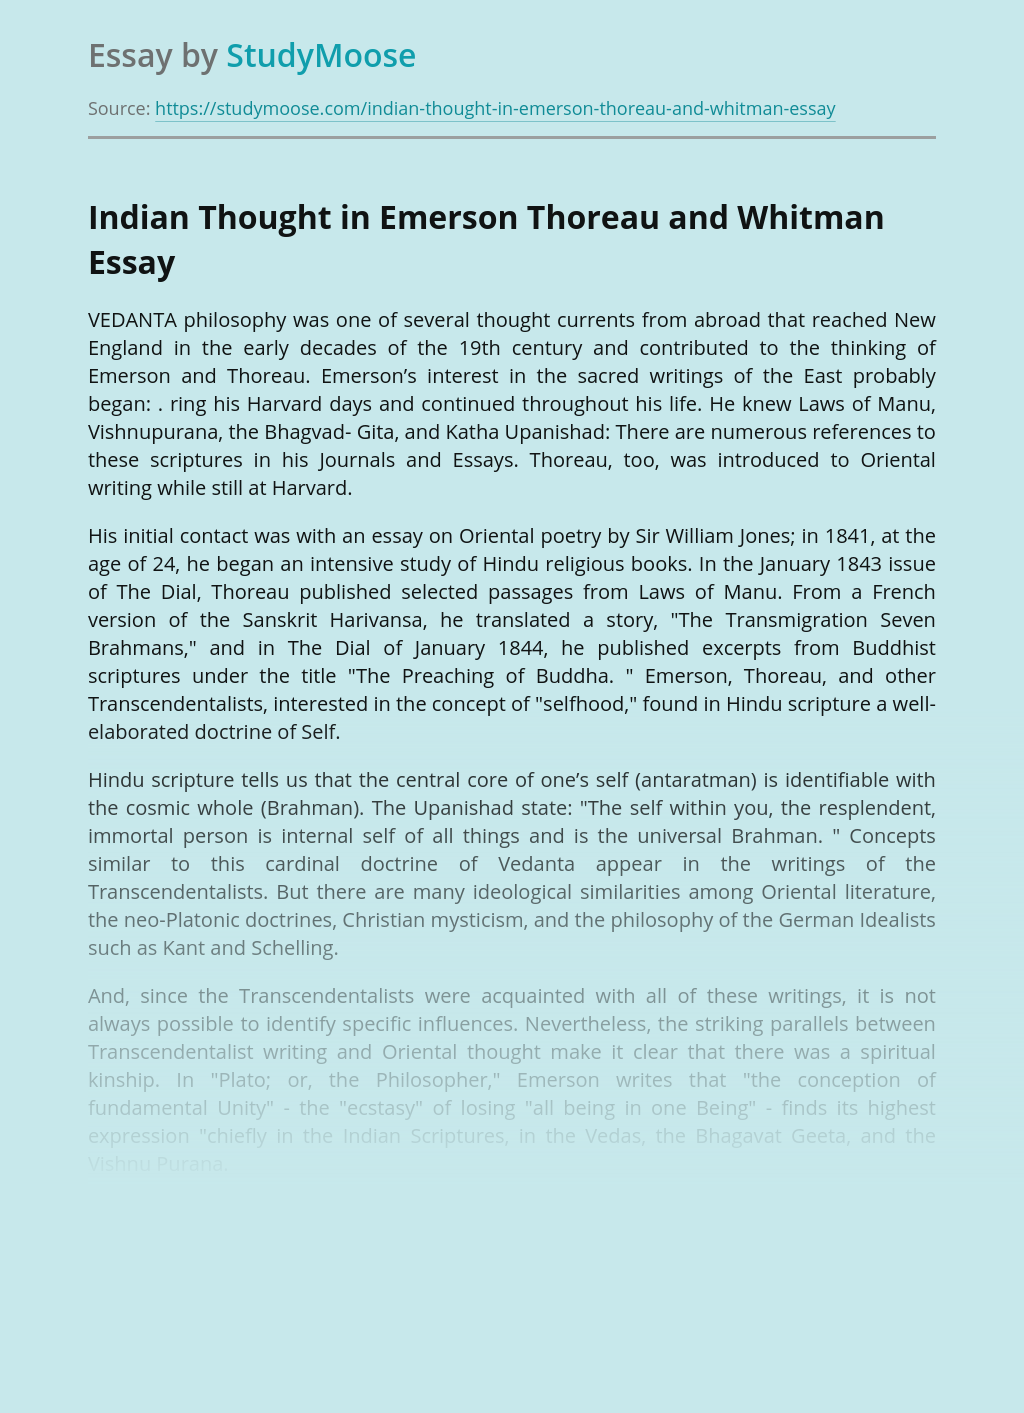 Indian Thought in Emerson Thoreau and Whitman